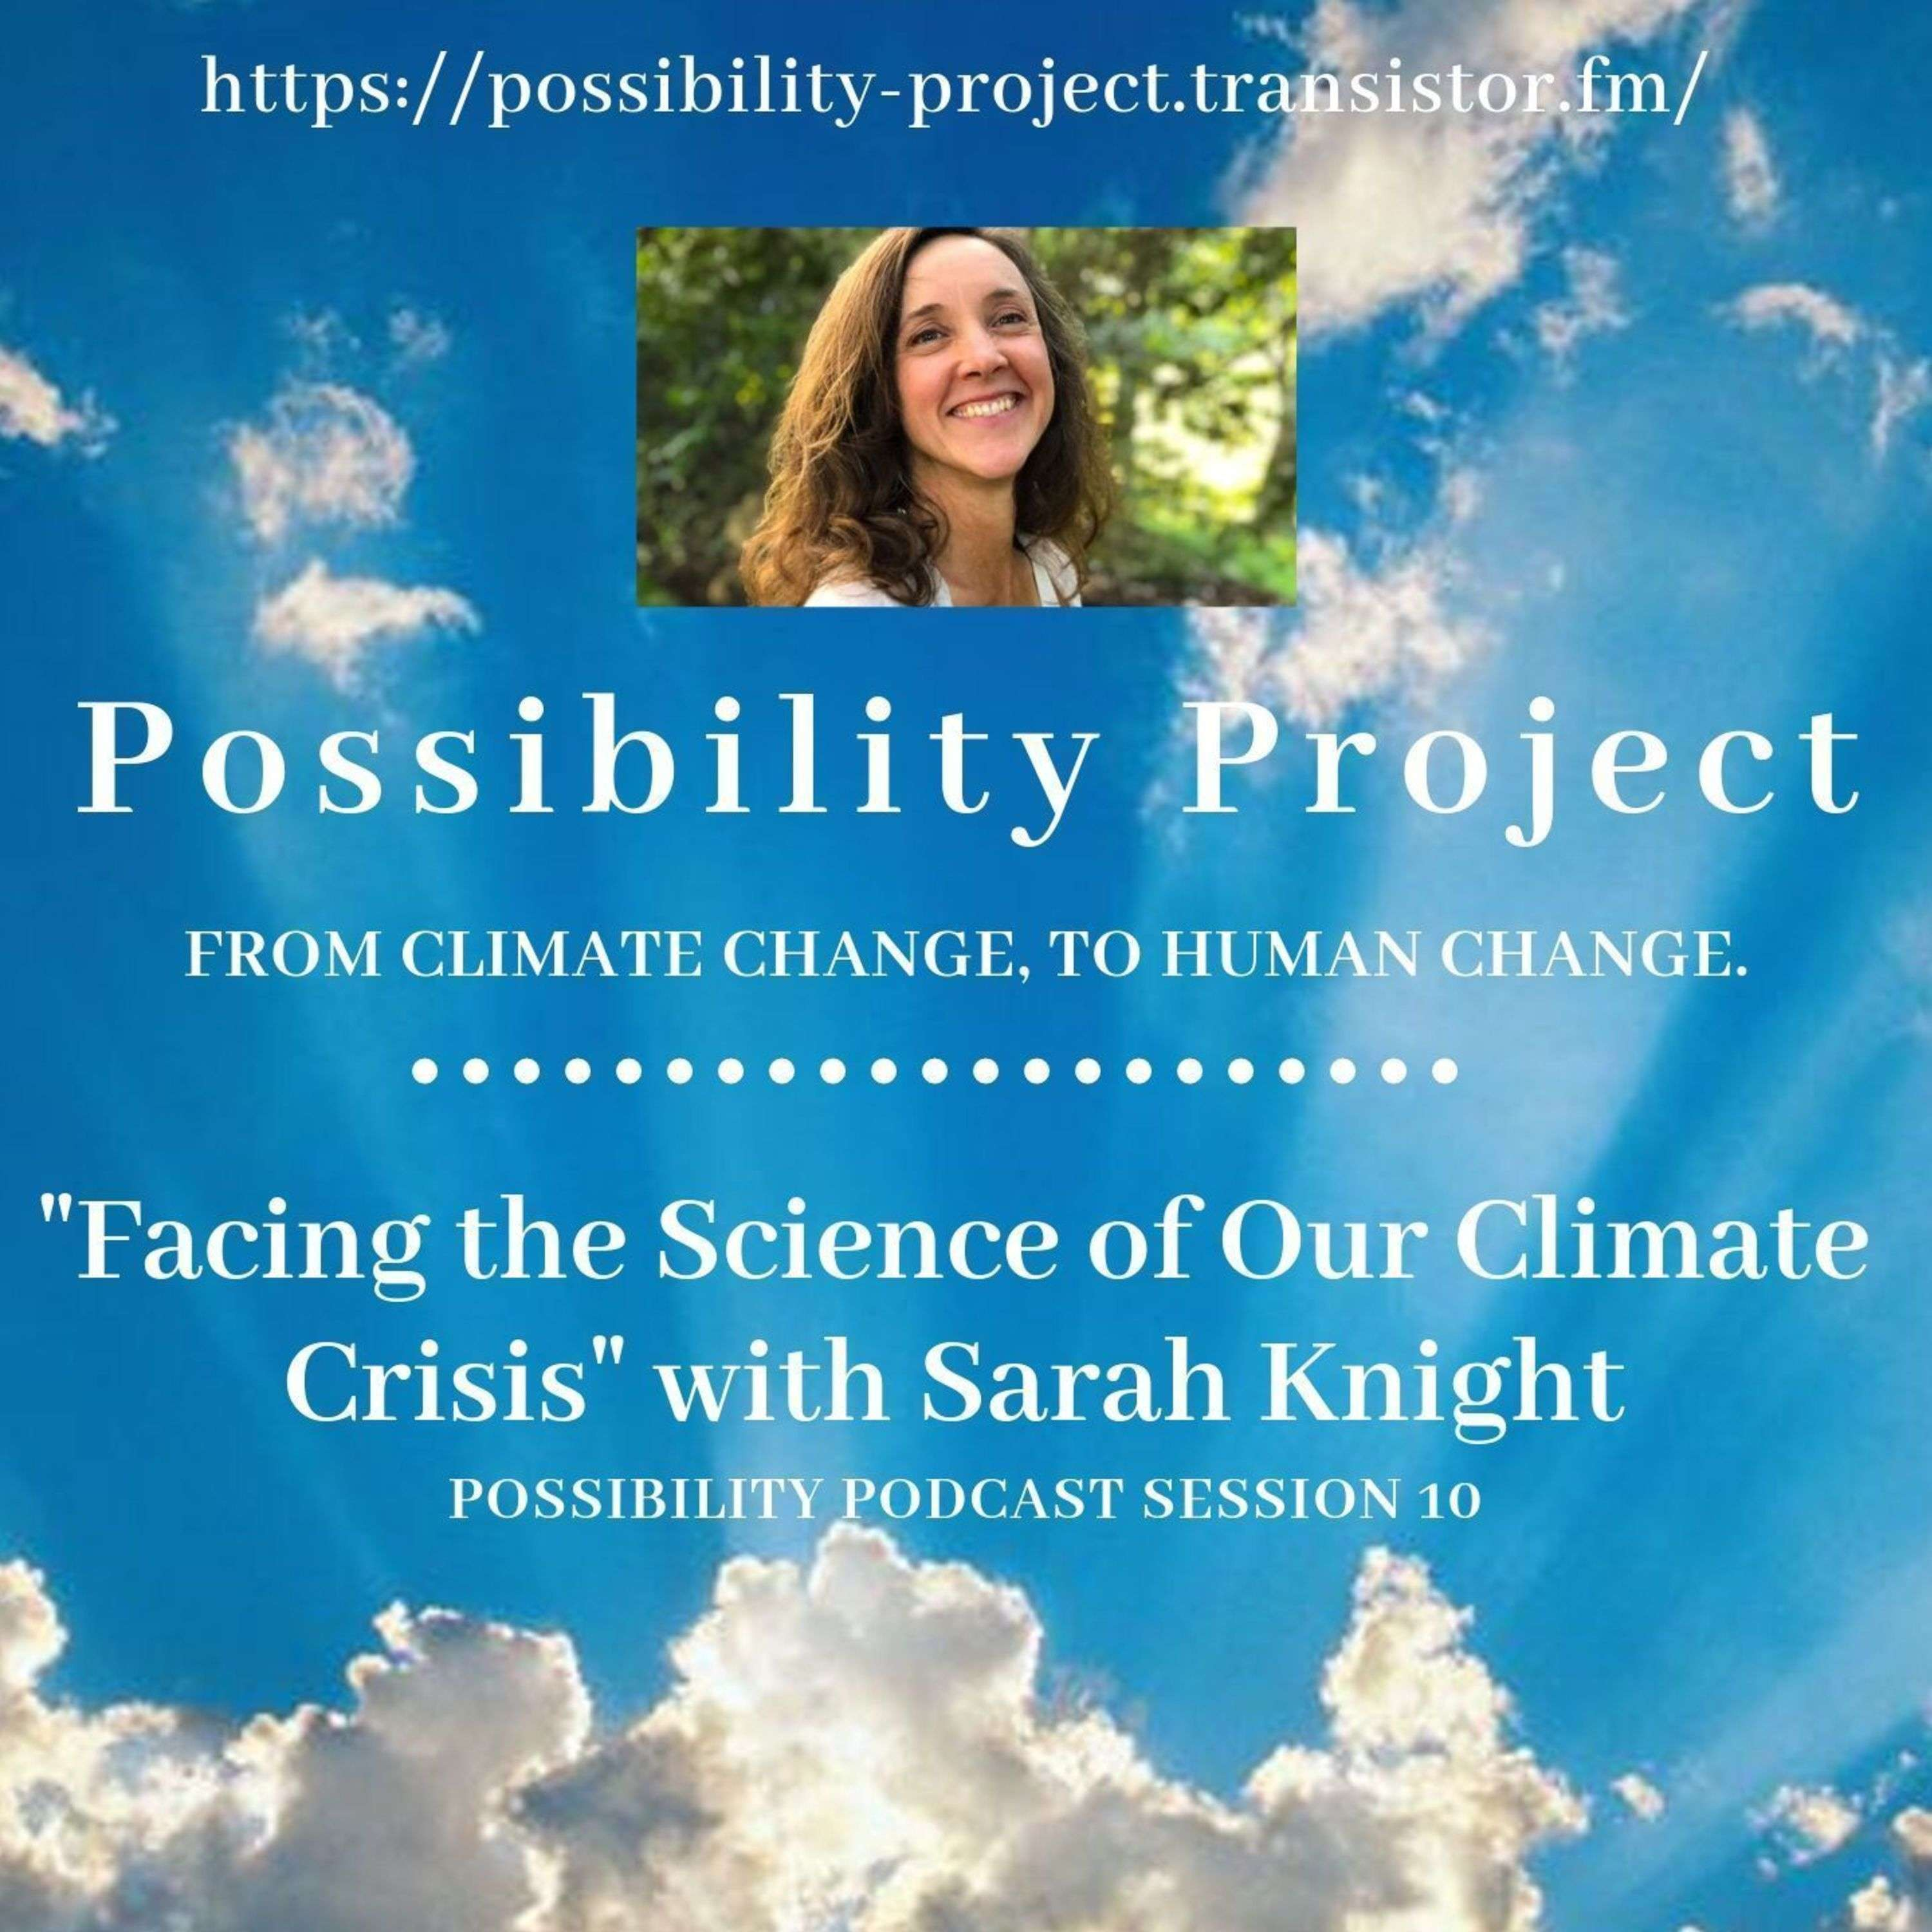 Facing the Science of our Climate Crisis. Possiblity Podcast Session 10